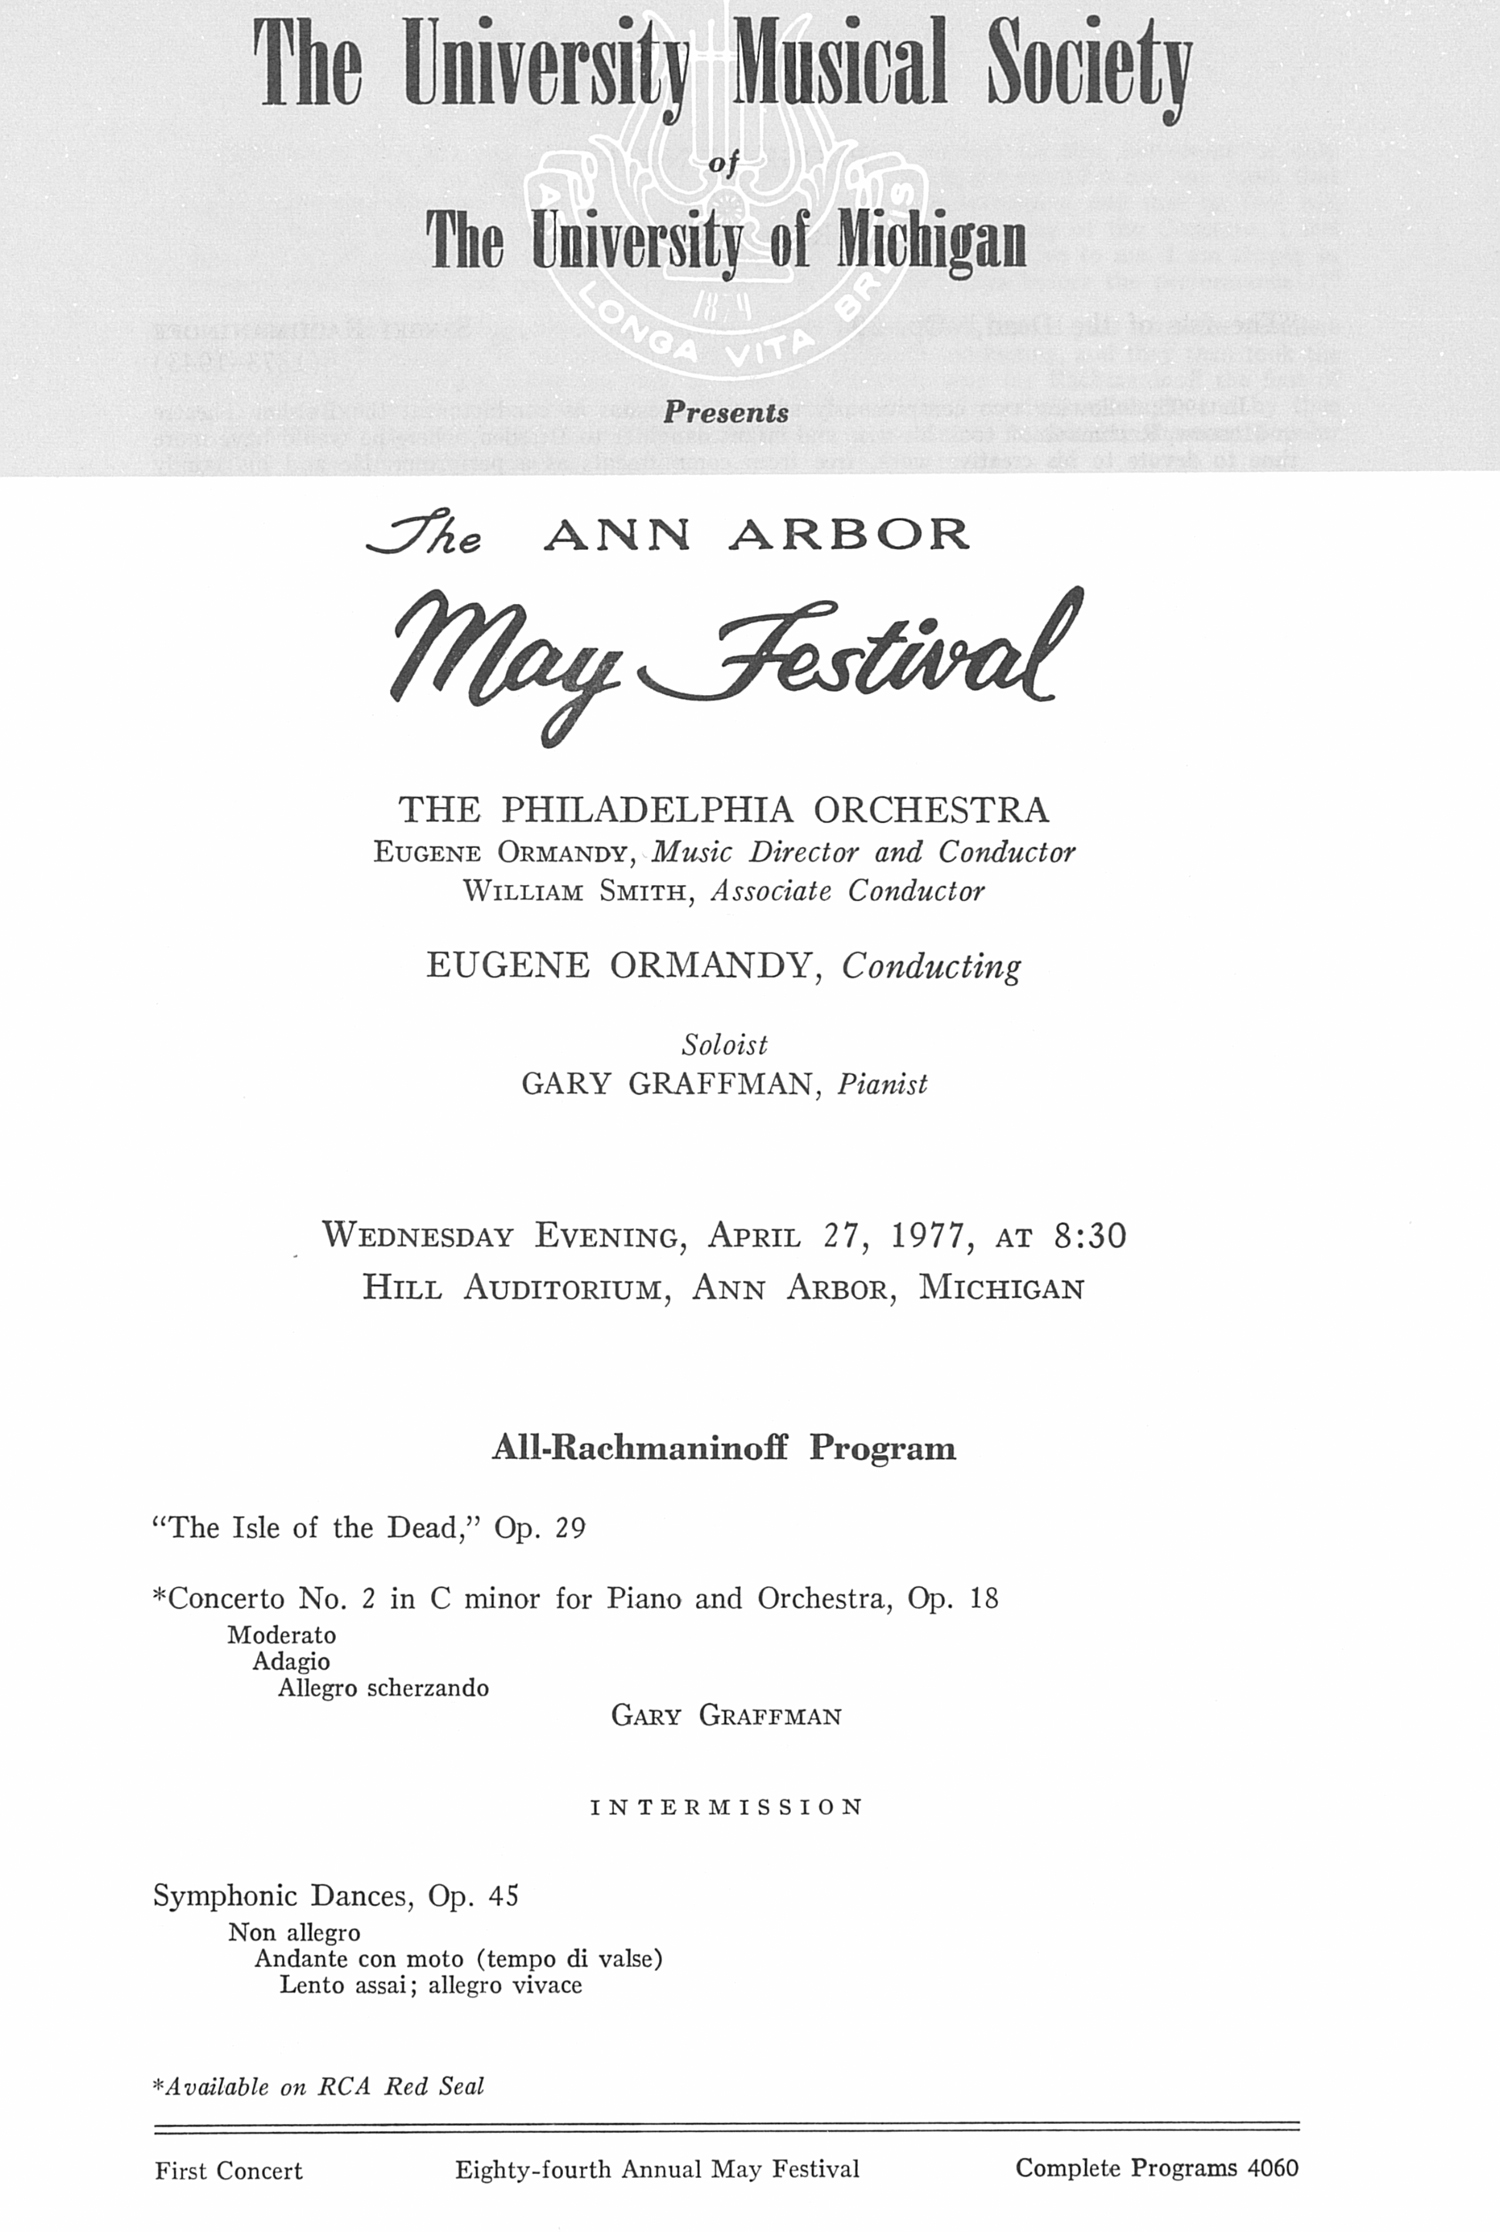 UMS Concert Program, April 27, 1977: The Ann Arbor May Festival -- The Philadelphia Orchestra image